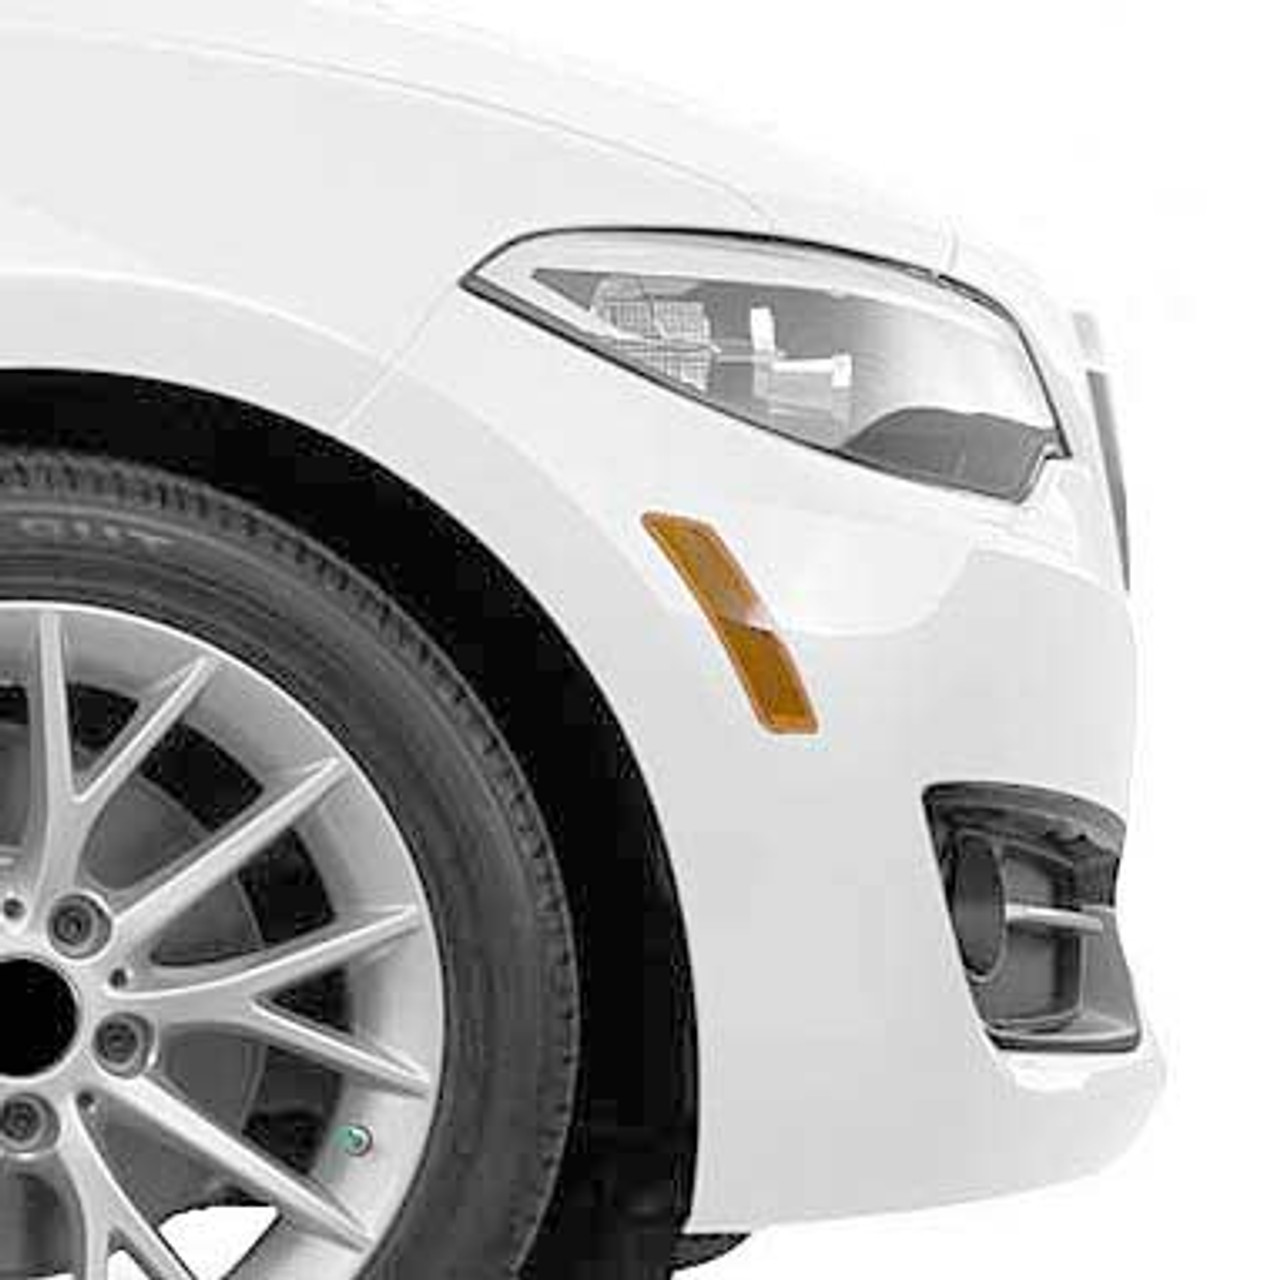 BMW Front Right Bumper Reflector for F22, F23 2-Series